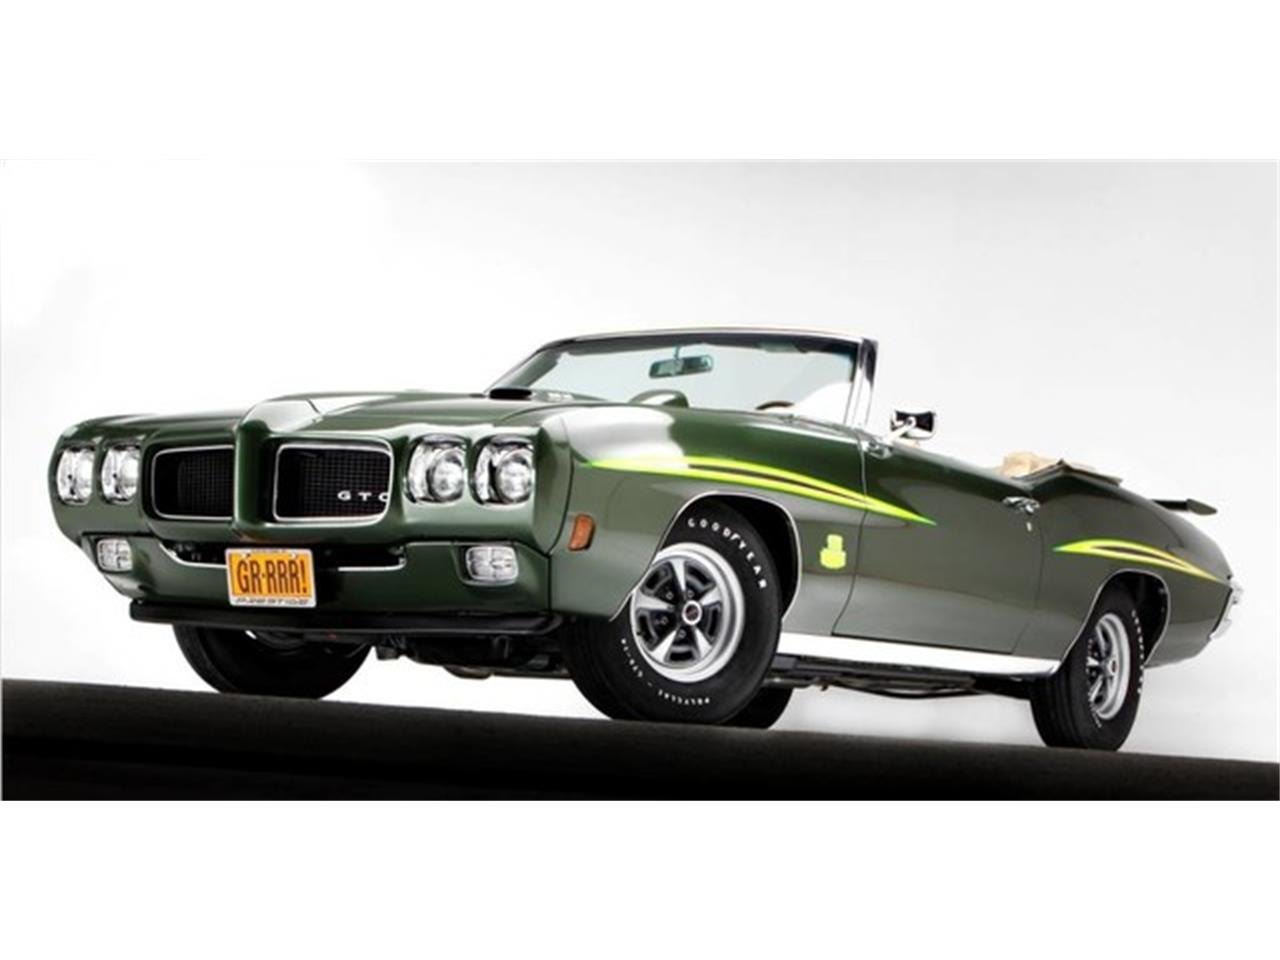 Large Picture of '70 GTO (The Judge) - $219,000.00 - PU25